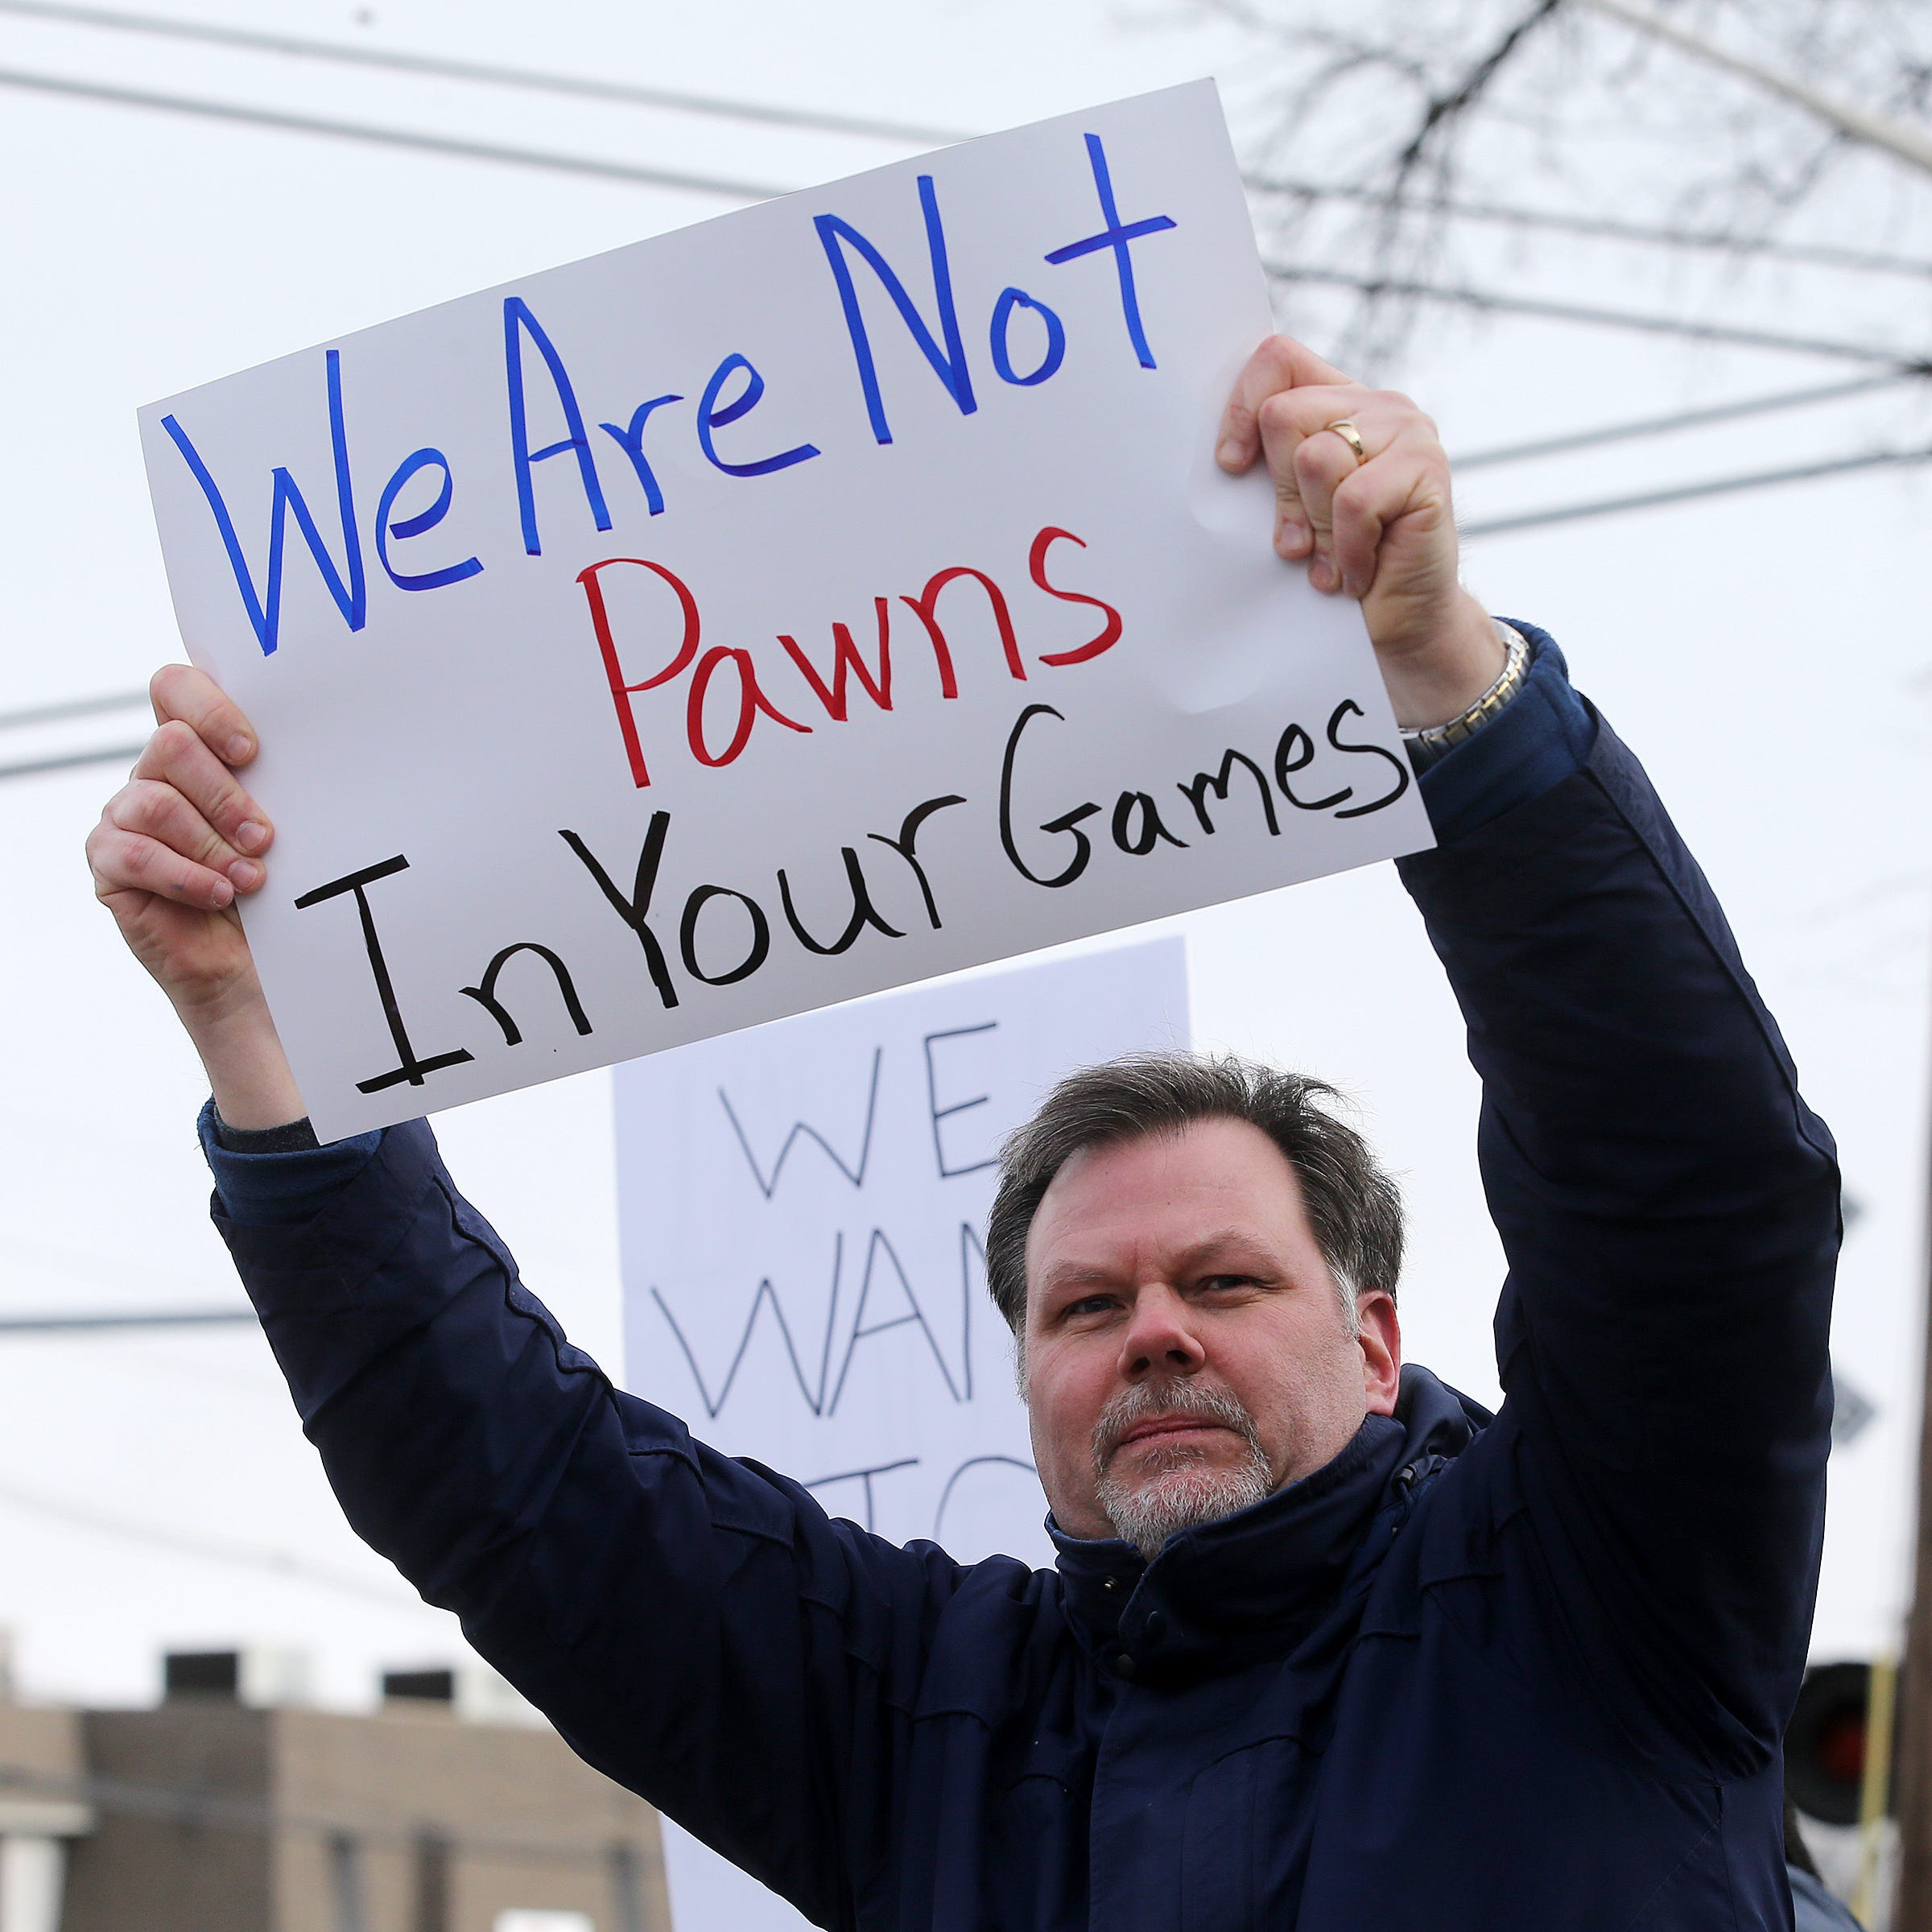 Government shutdown: Federal workers rally for their jobs in NJ